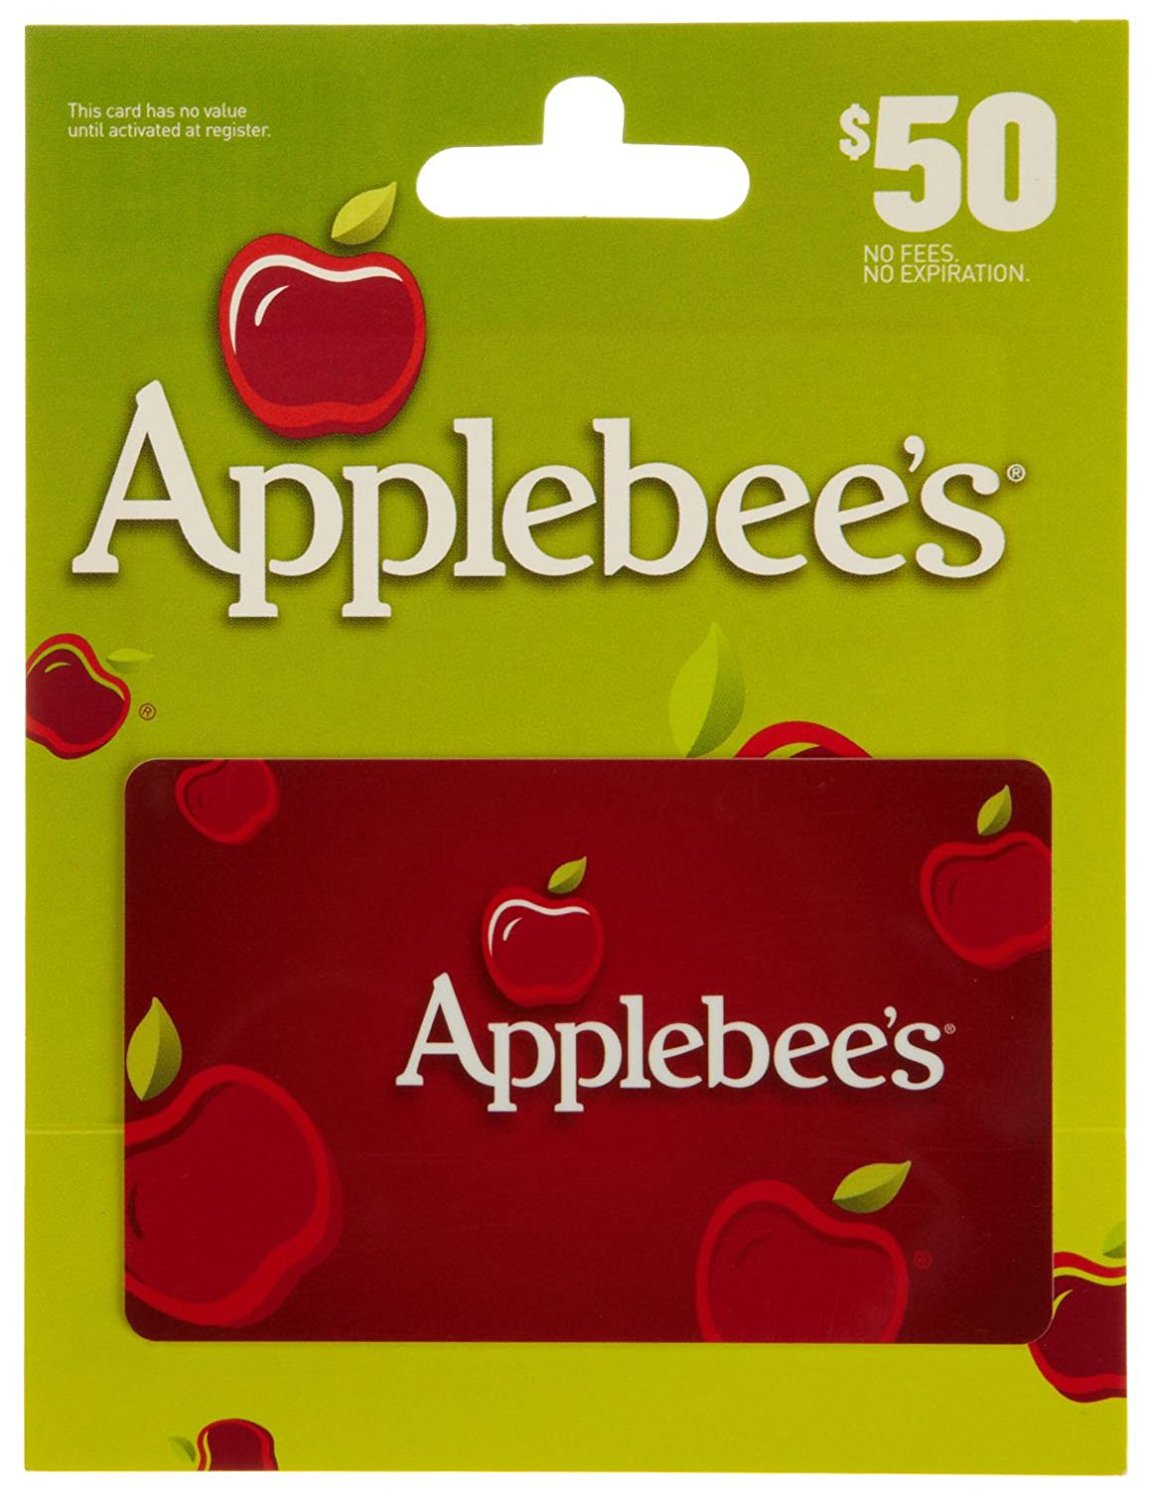 apple bees gift card photo - 1